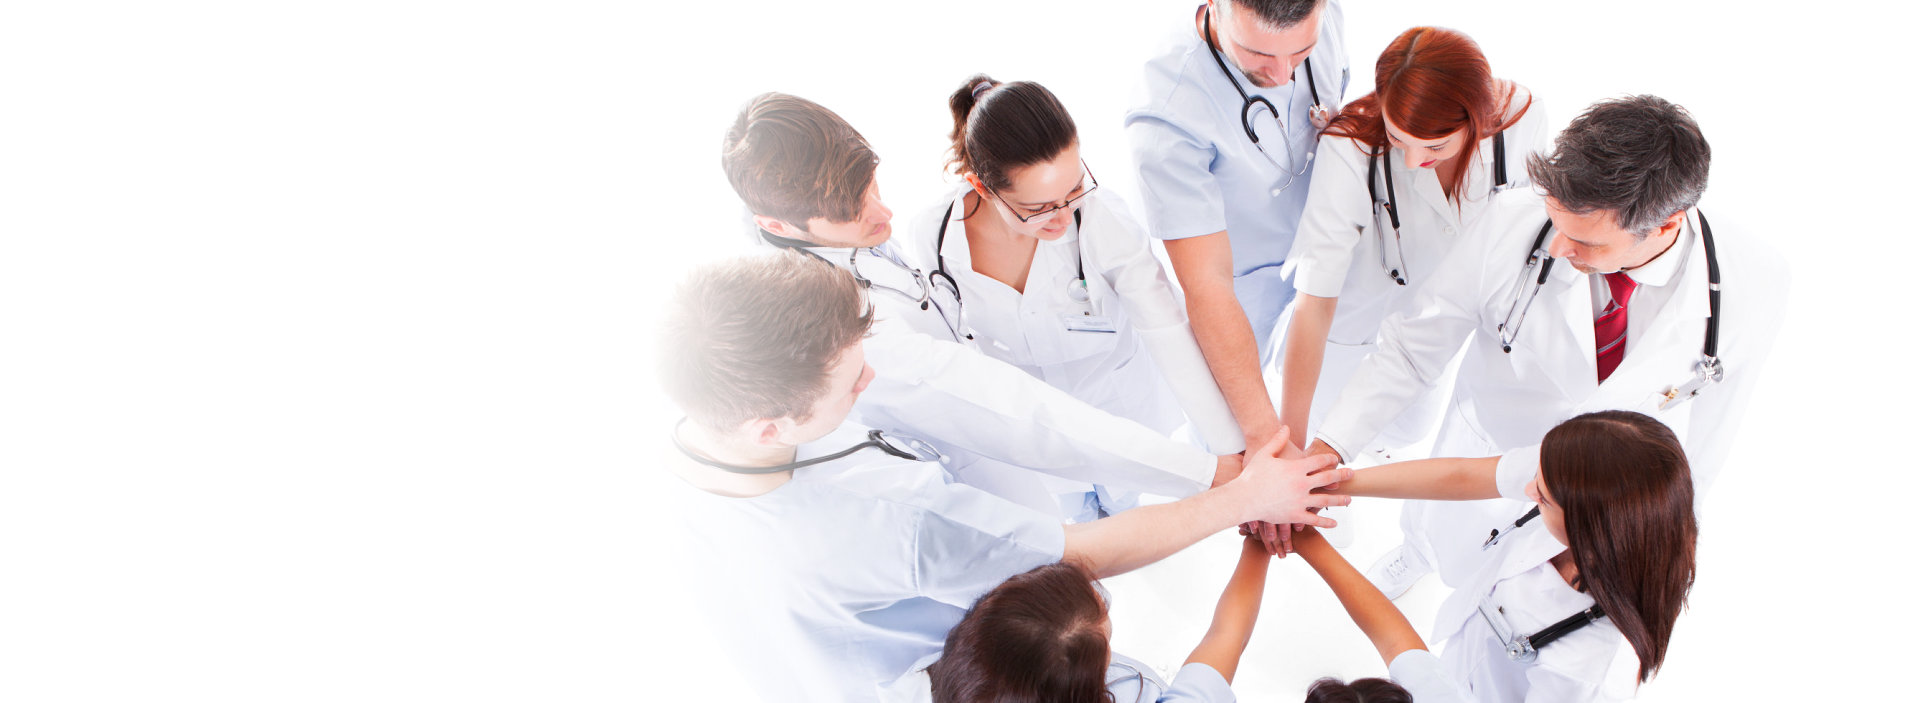 medical team piling hands